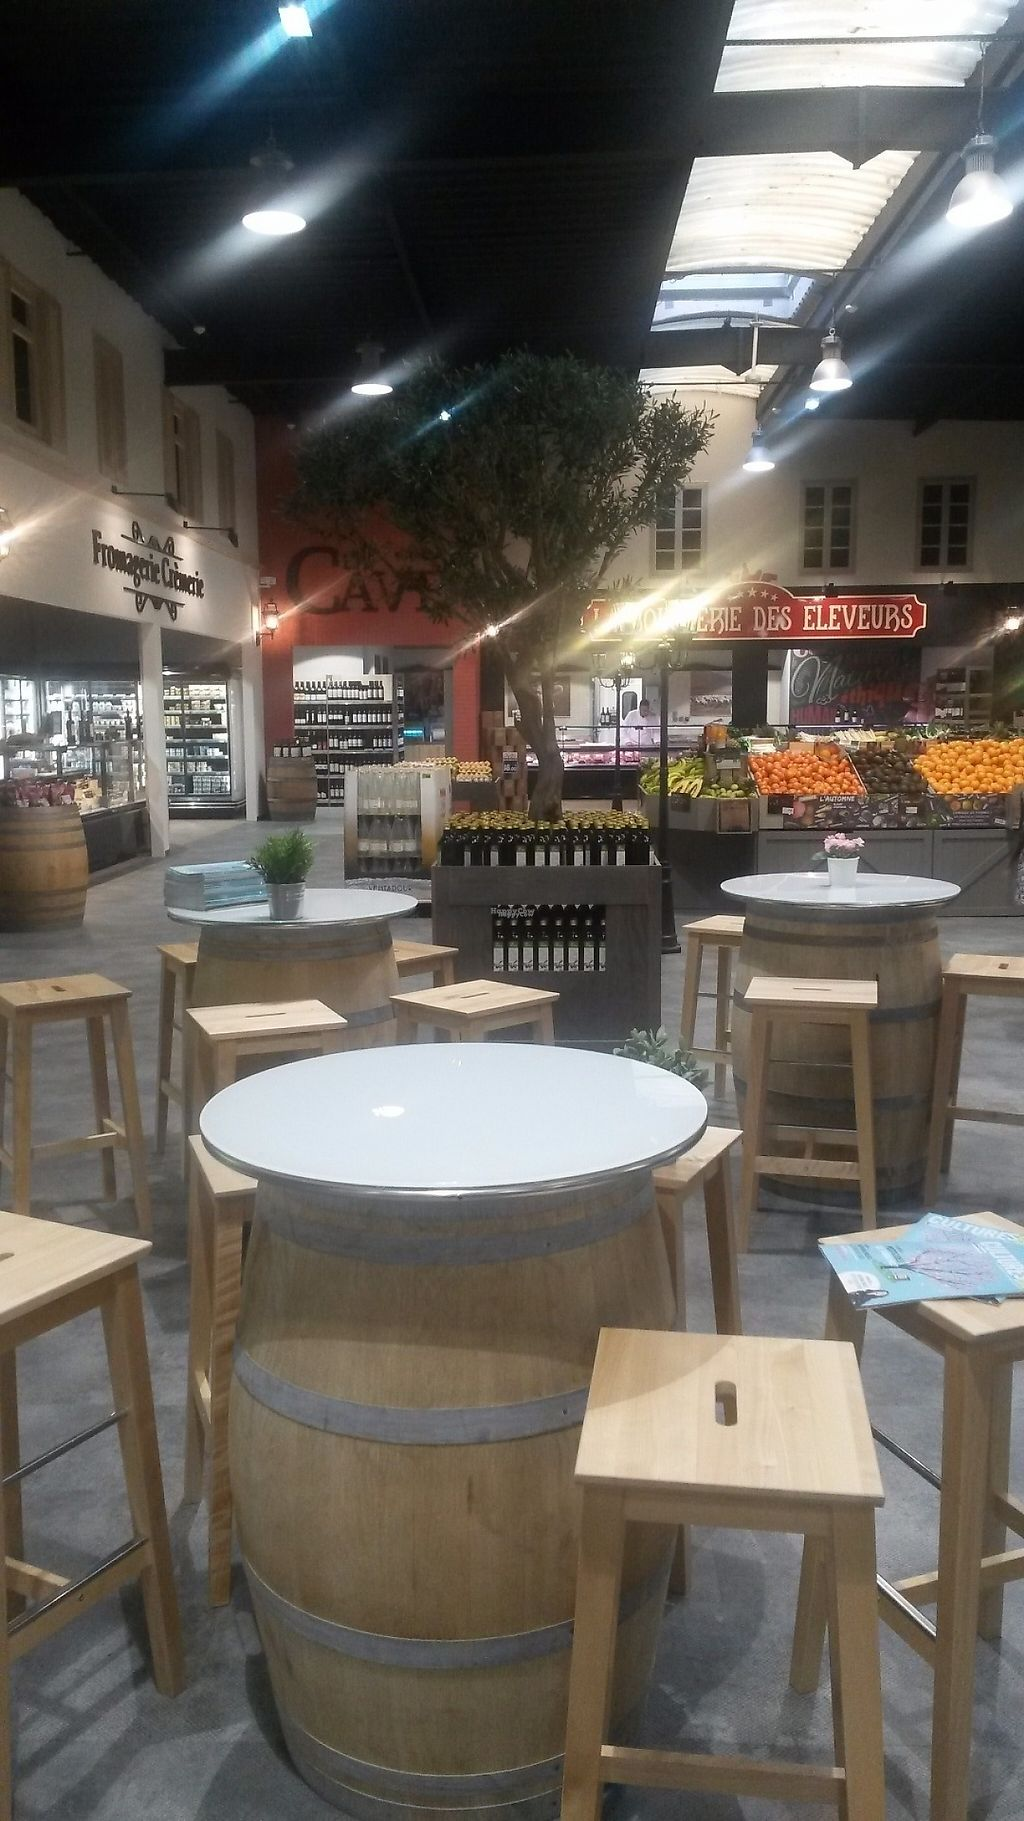 """Photo of Biocoop - Bordeaux Lac  by <a href=""""/members/profile/PascalB"""">PascalB</a> <br/>The back part of the store is very nicely decorated <br/> March 21, 2017  - <a href='/contact/abuse/image/89020/239193'>Report</a>"""